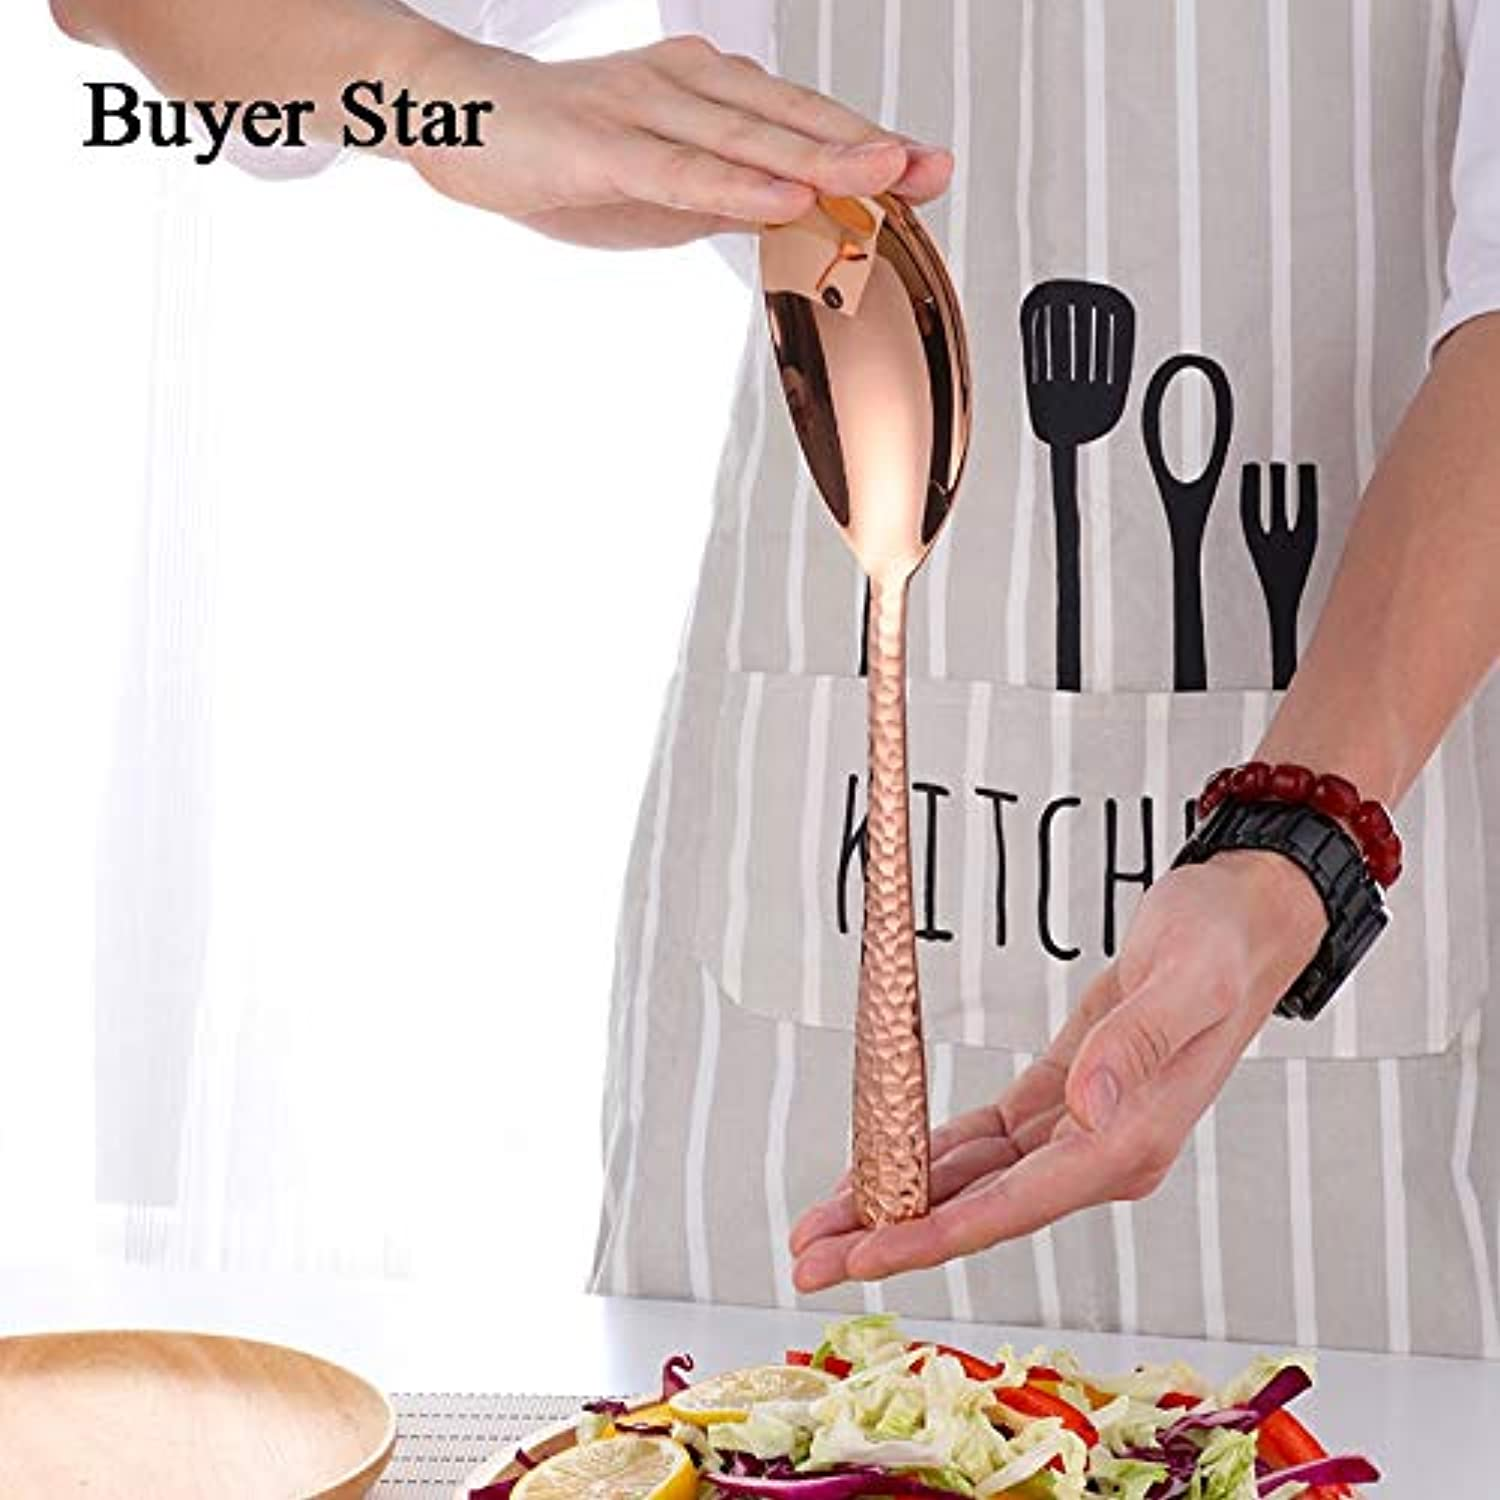 Buyer Star Tableware Set High Quality Utensils Stainless Steel Kitchen Dishes Dinnerware Large Size Salad Spork and Spoon